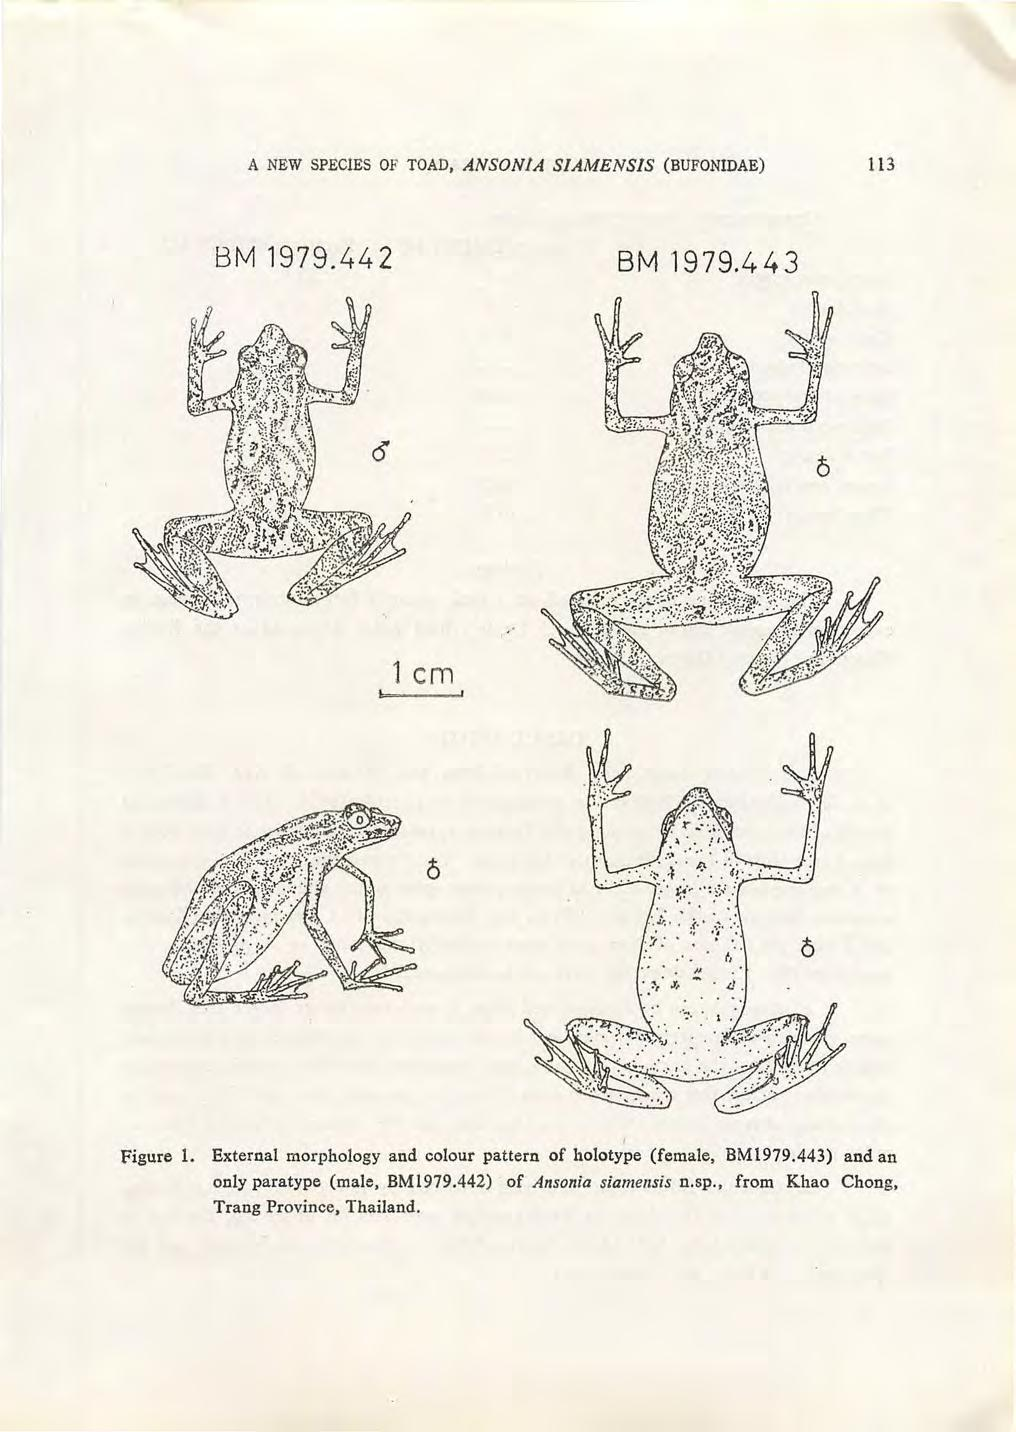 A NEW SPECIES OF TOAD, ANSONIA SIAMENSIS (BUFONIDAE) 11 3 BM 1979.442 BM '1979.443 1 em Figure 1.